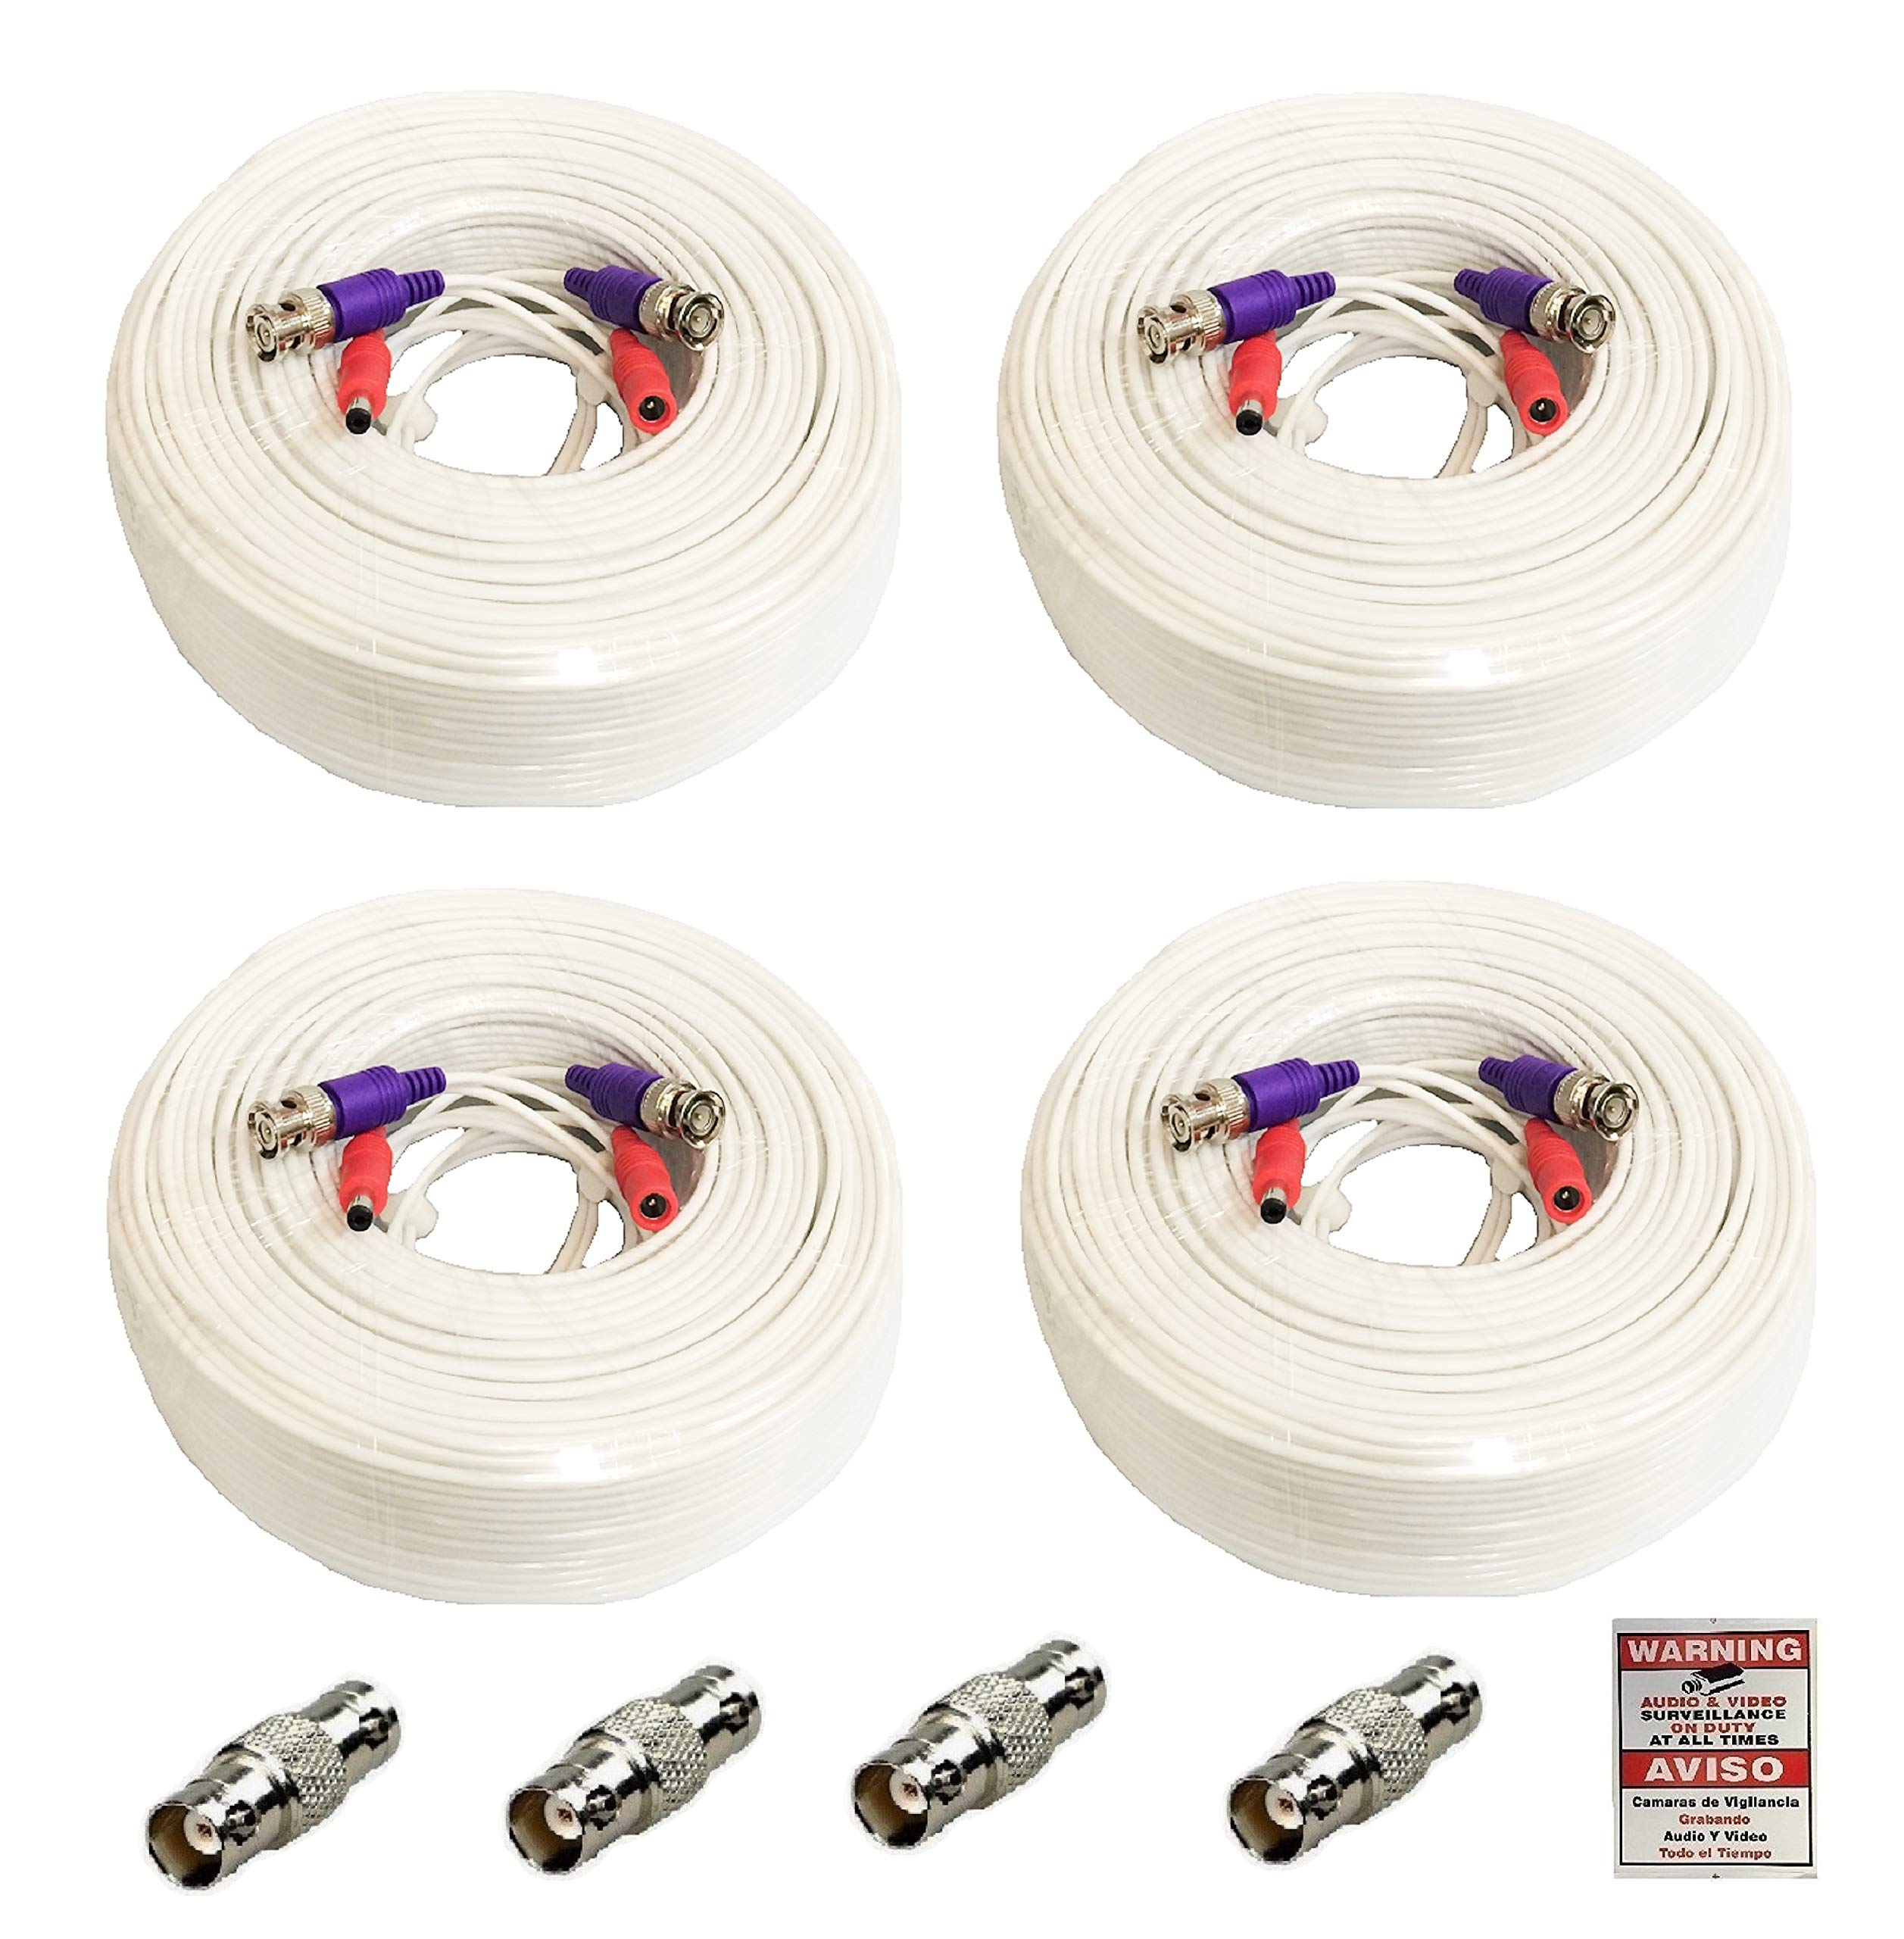 WennoW 4 Pack 100 Feet All-in-One Siamese 4K 8MP BNC Video & Power Extension Cable for All HD CCTV Security Cameras DVR System WT